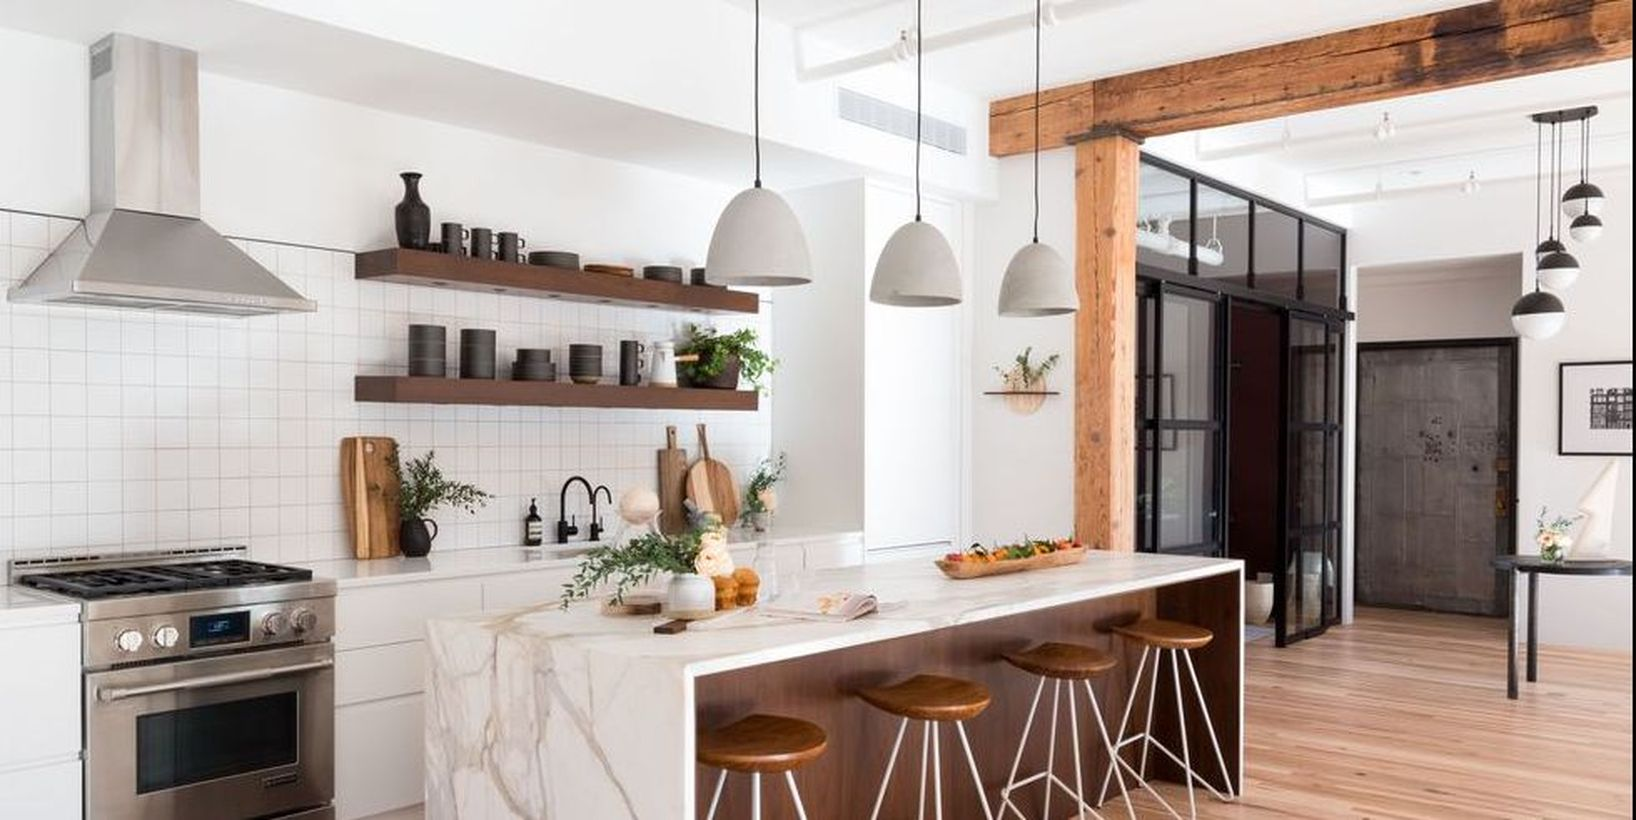 1a-trio-of-concrete-gray-pendants-softly-grounds-a-white-and-wood-kitchen.